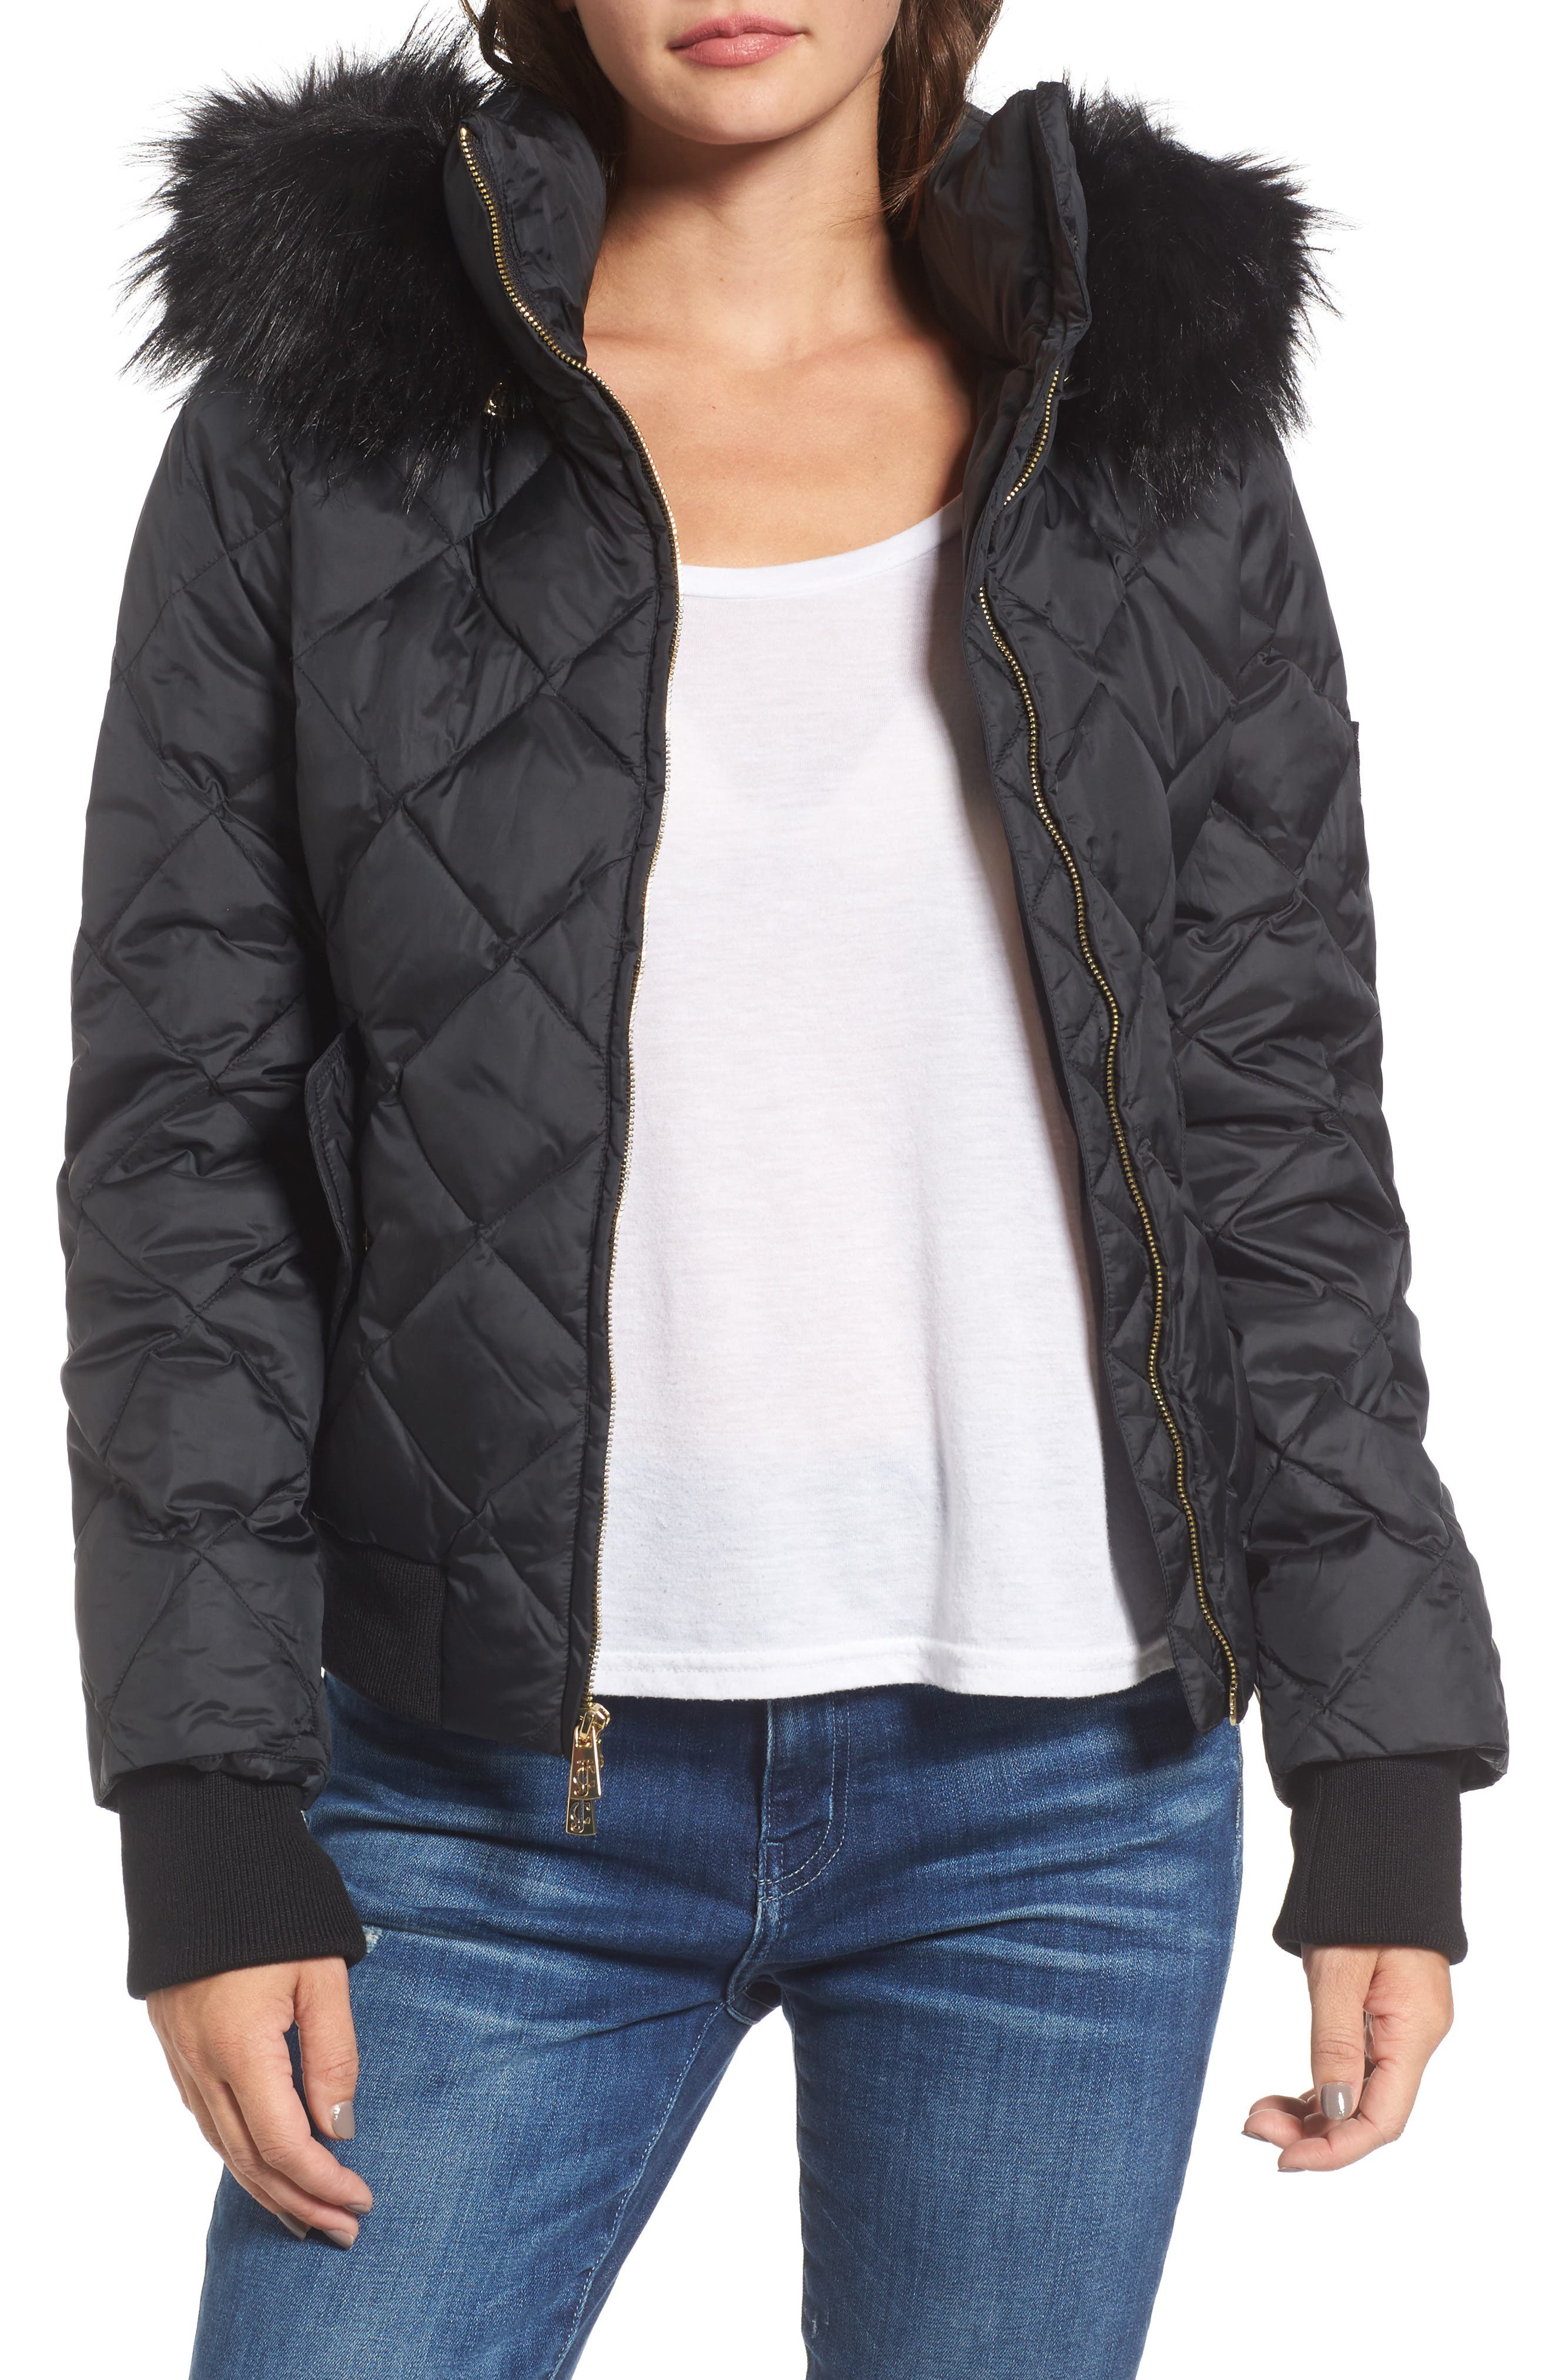 Alternate Image 1 Selected - Juicy Couture Hooded Puffer Jacket with Faux Fur Trim